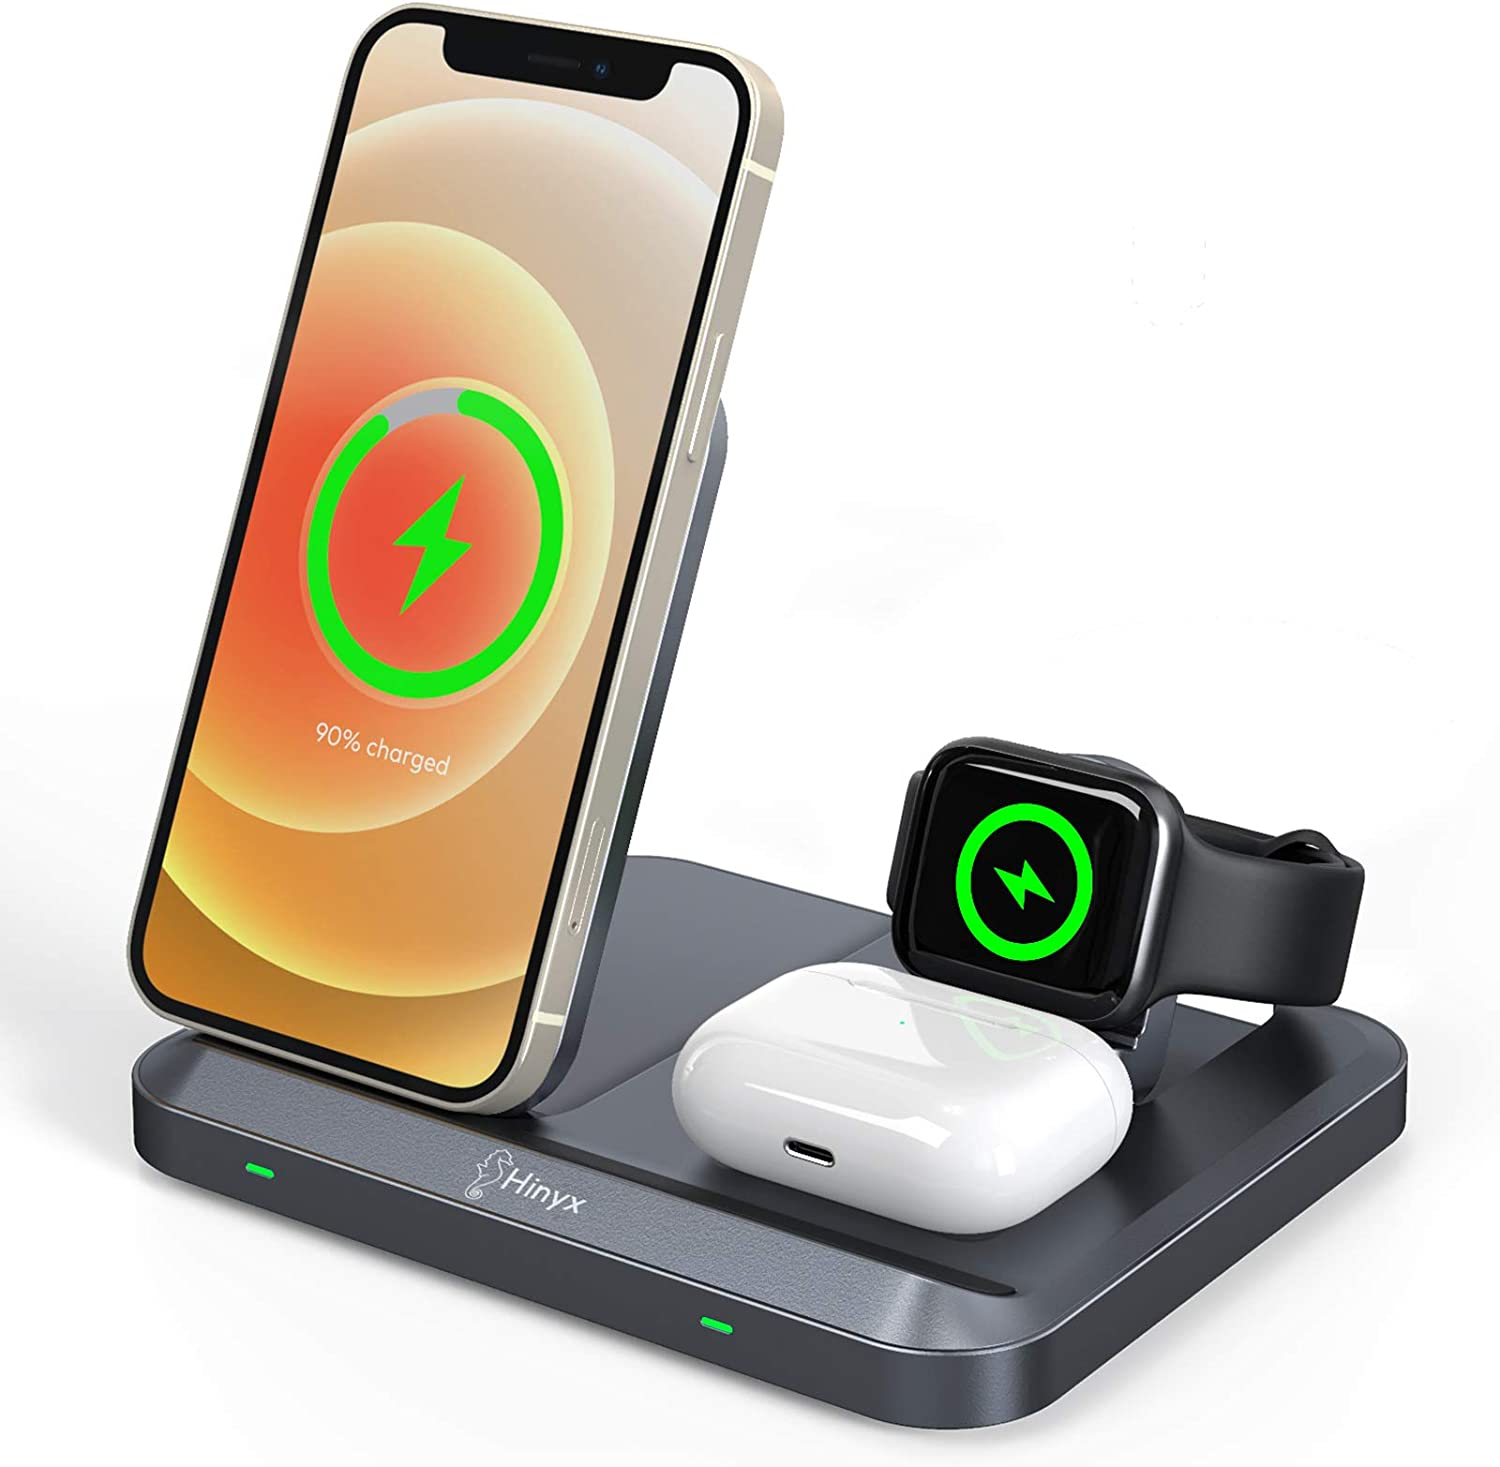 Foldable Wireless Charging Pad for iPhone 12//12 Pro//12 Mini//11//XS//XR//X//8,Galaxy S20//S10// Note 10 Hinyx 3 in 1 Wireless Charger Stand,Wireless Charging Station for iWatch SE//6//5//4//3//2 /& Airpods Pro//2